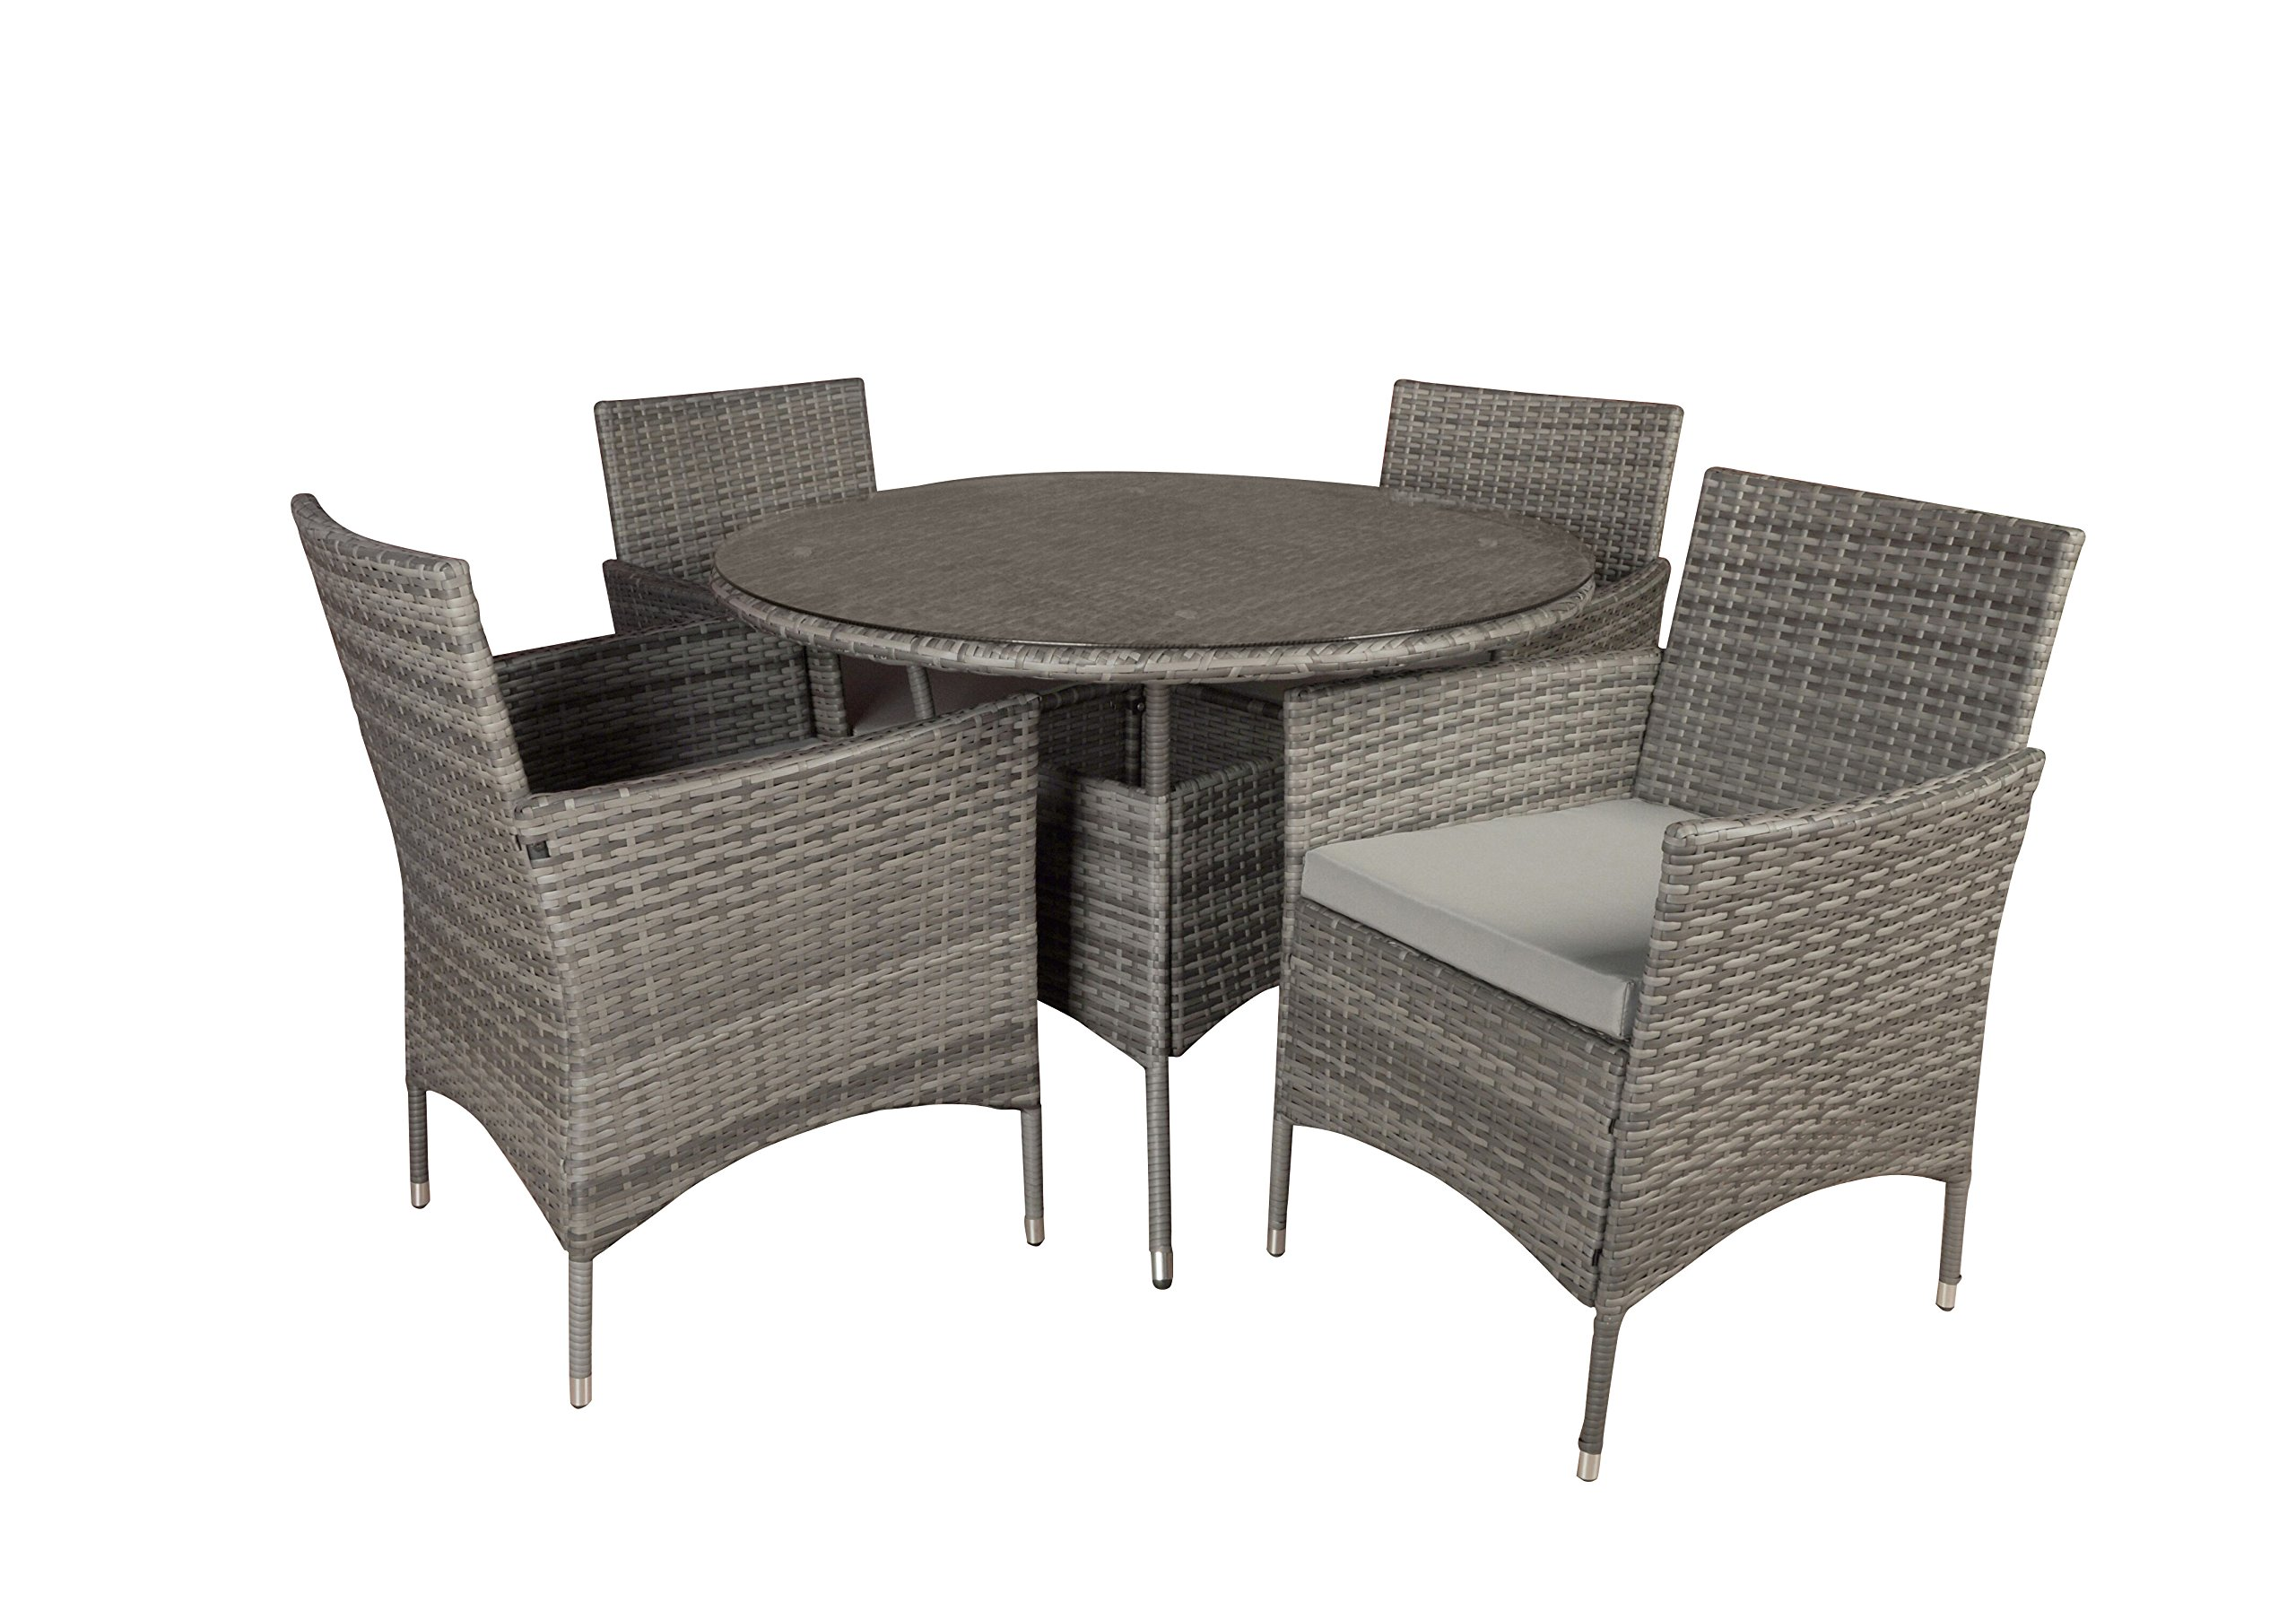 Outdoor Patio Table and Chairs Dining Furniture Set (Grey) - Modern round table with 4 chairs in the same durable and all weather material. Woven with rattan material which is a longer lasting and all weather type of wicker. Table top is tempered clear glass and each chair has a comfortable foam cushion with an all weather cover. - patio-furniture, dining-sets-patio-funiture, patio - 81vSaw4c6jL -